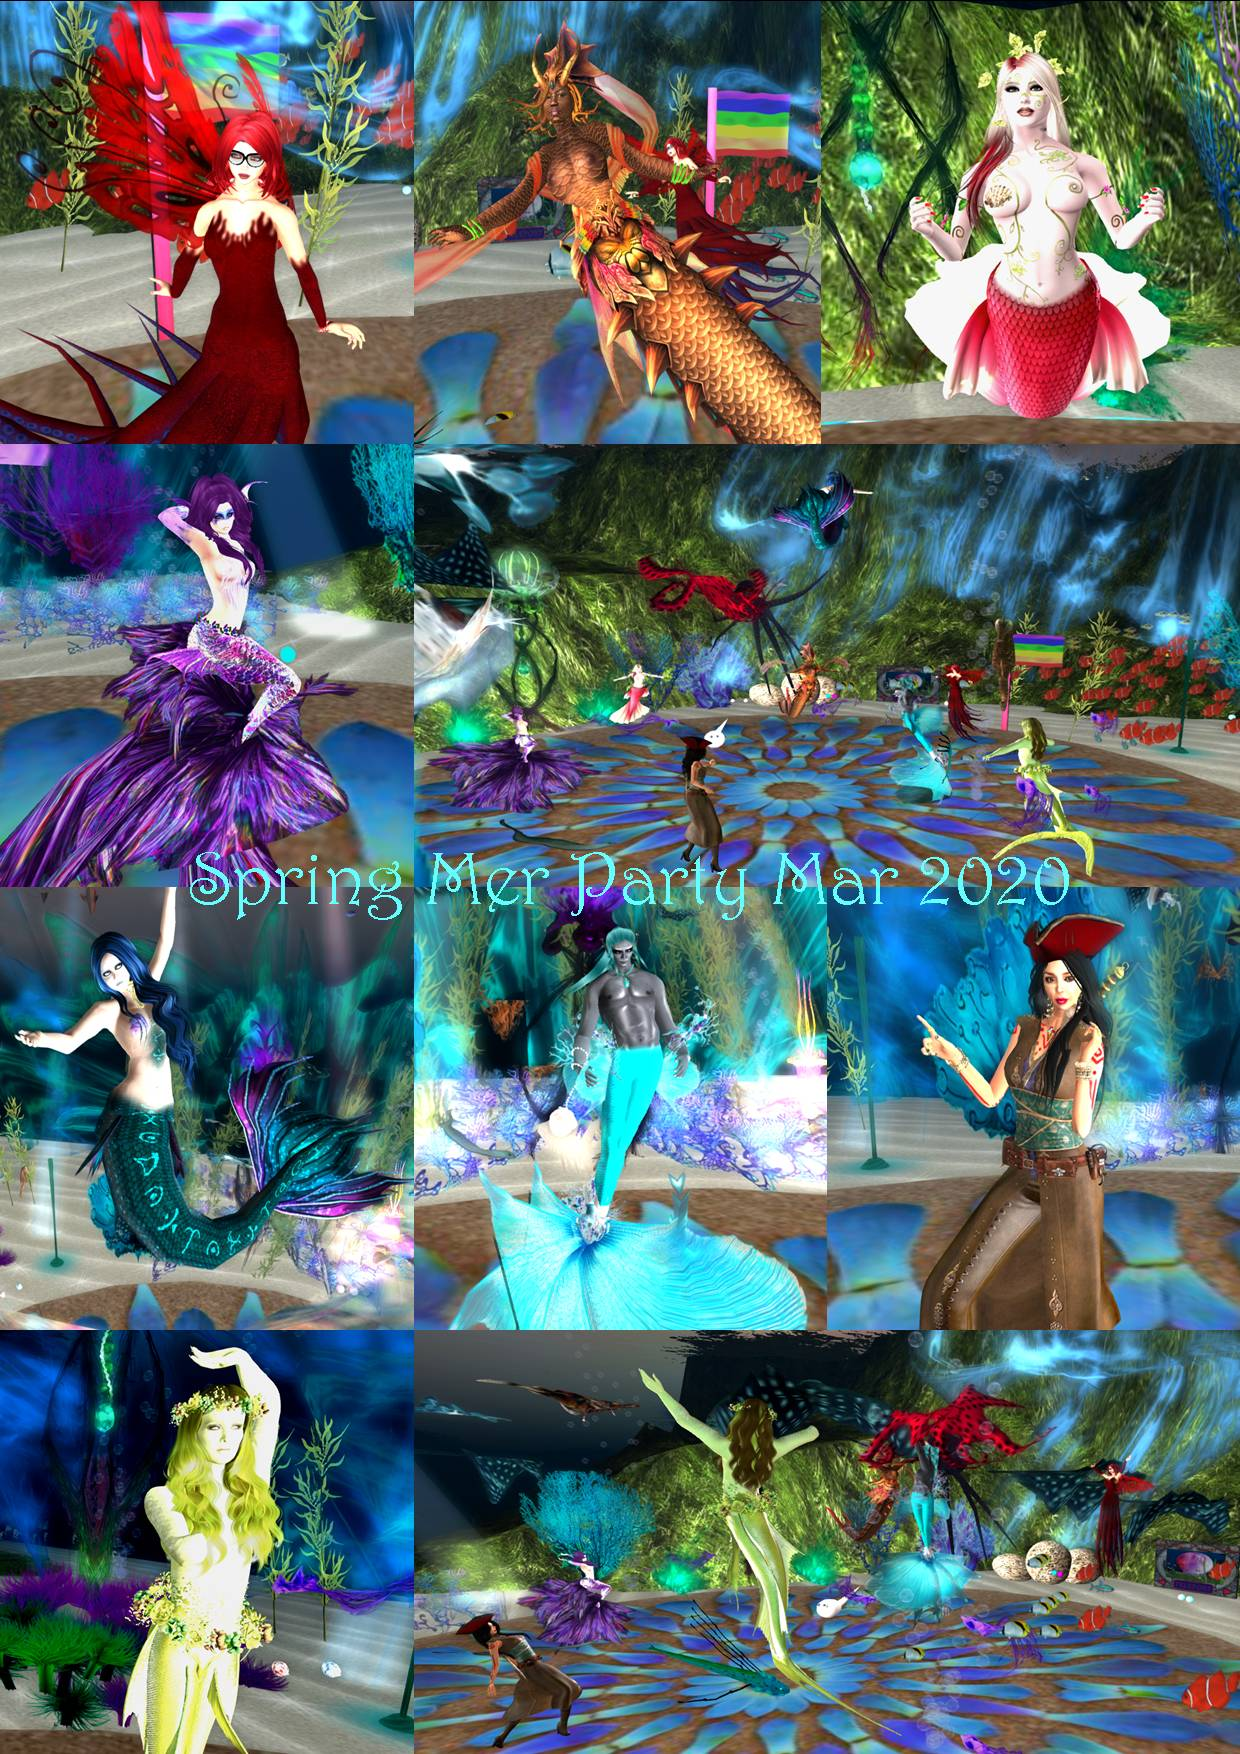 SPRING MER PARTY COLLAGE MAR 2020